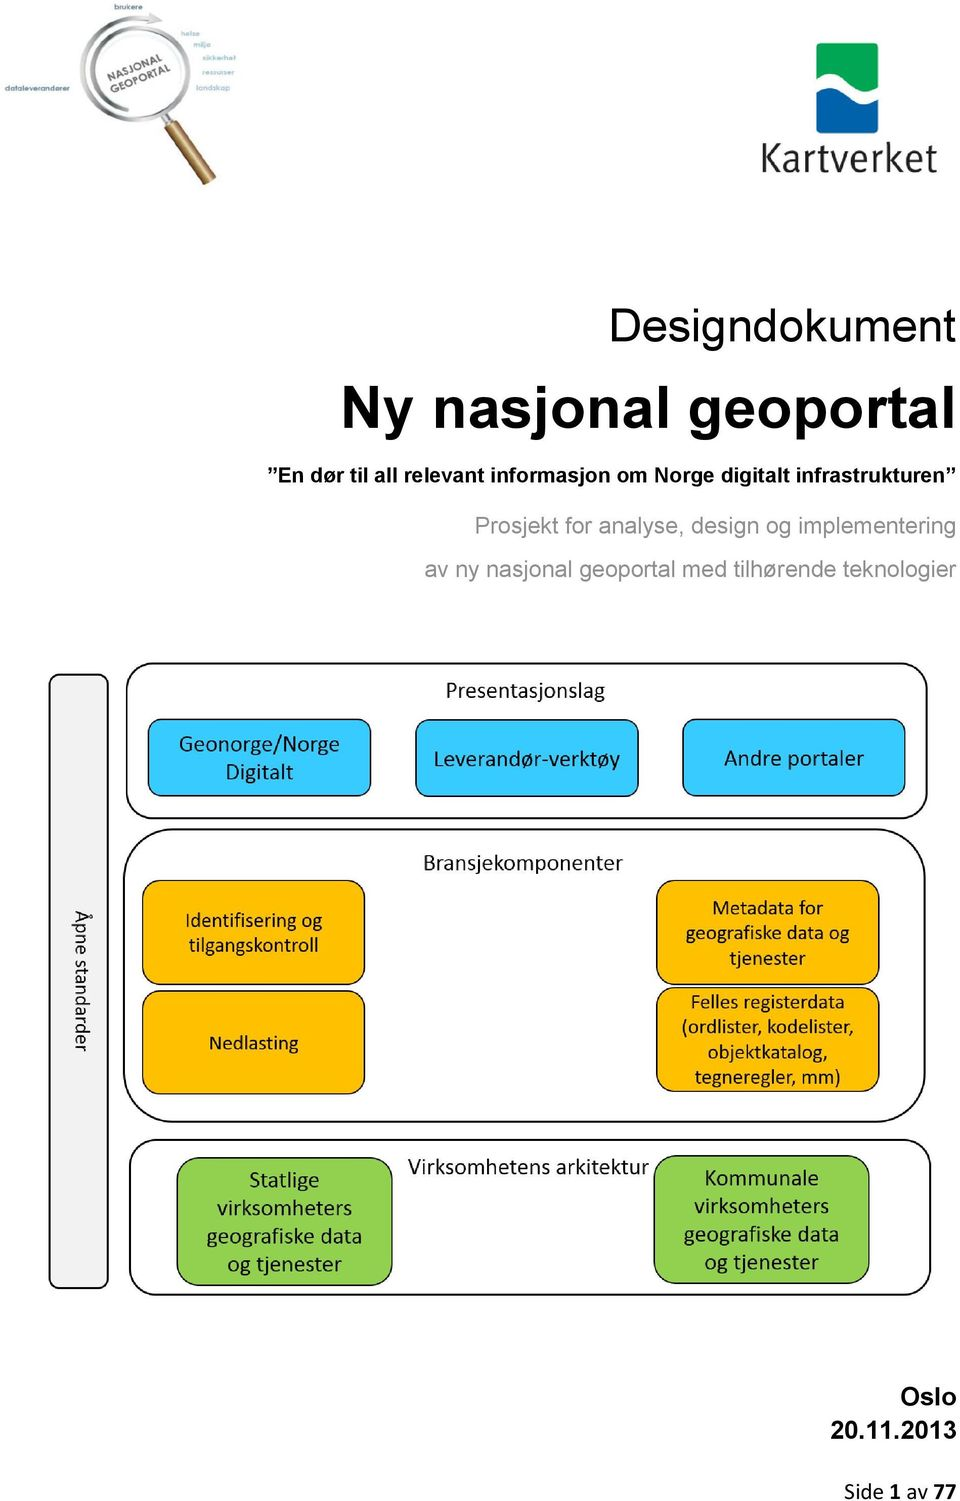 Prosjekt for analyse, design og implementering av ny